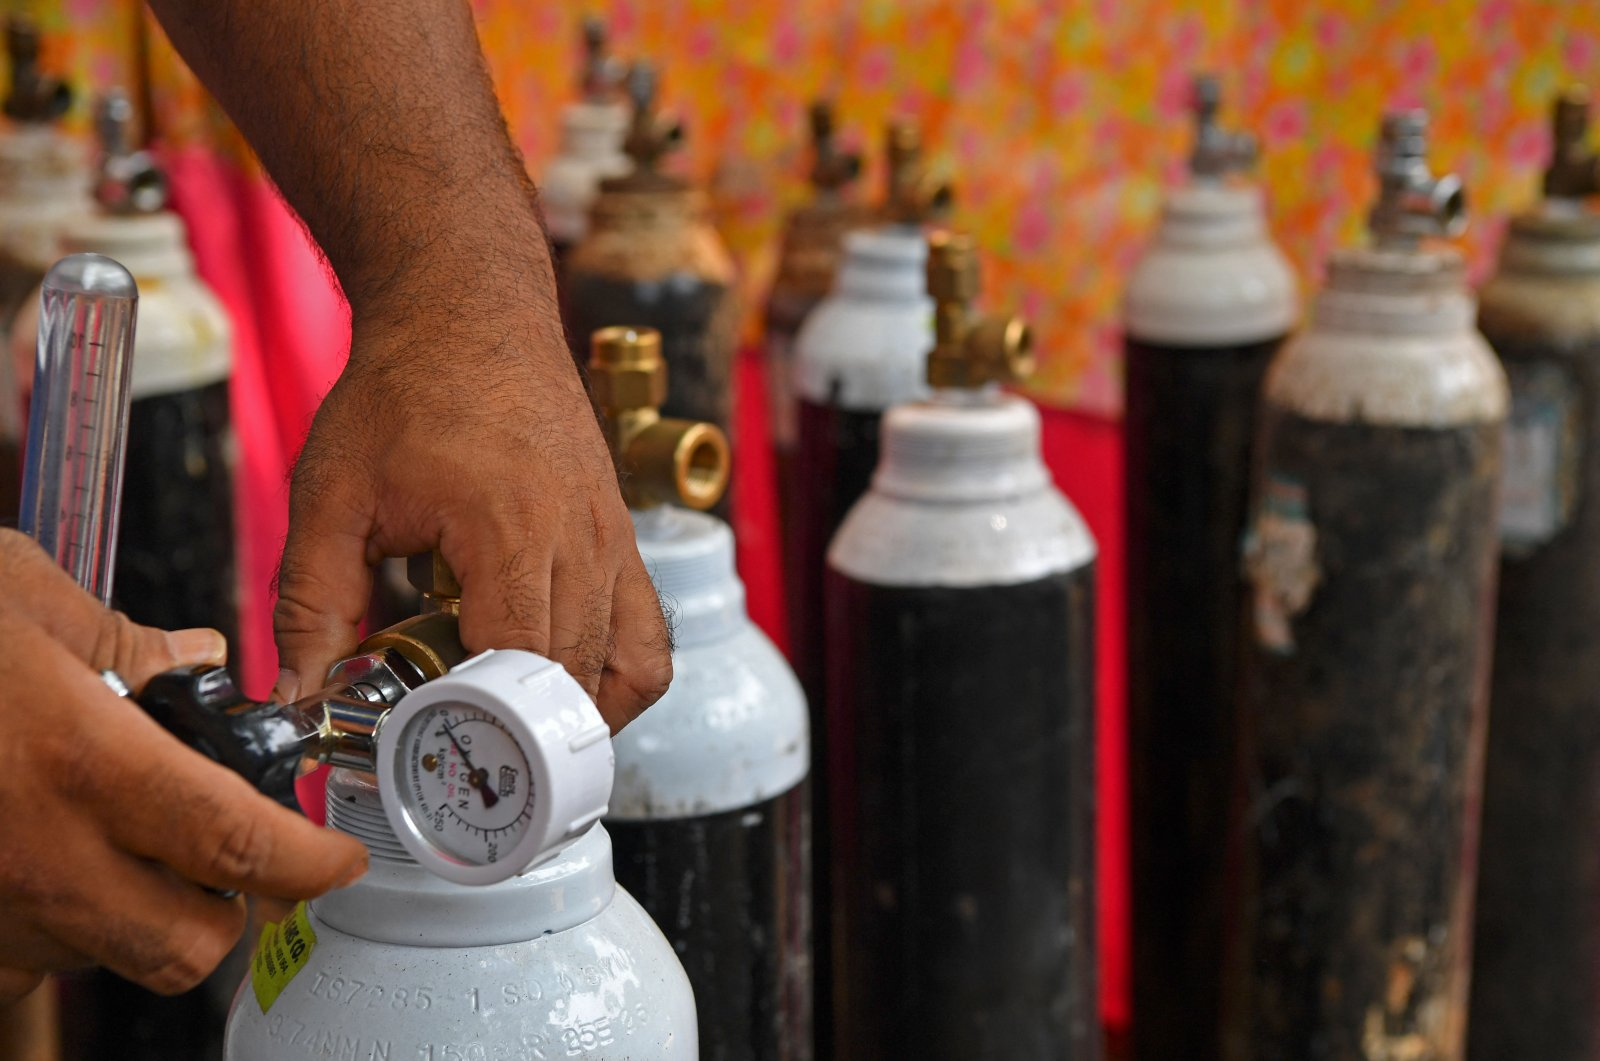 Local resident Shahnawaz Shaikh, who sold his SUV to raise funds in order to start a free service to provide oxygen cylinders to the needy amid the coronavirus pandemic, checks the pressure of an oxygen cylinder at a distribution center in a slum in Mumbai, India, April 28, 2021. (AFP Photo)